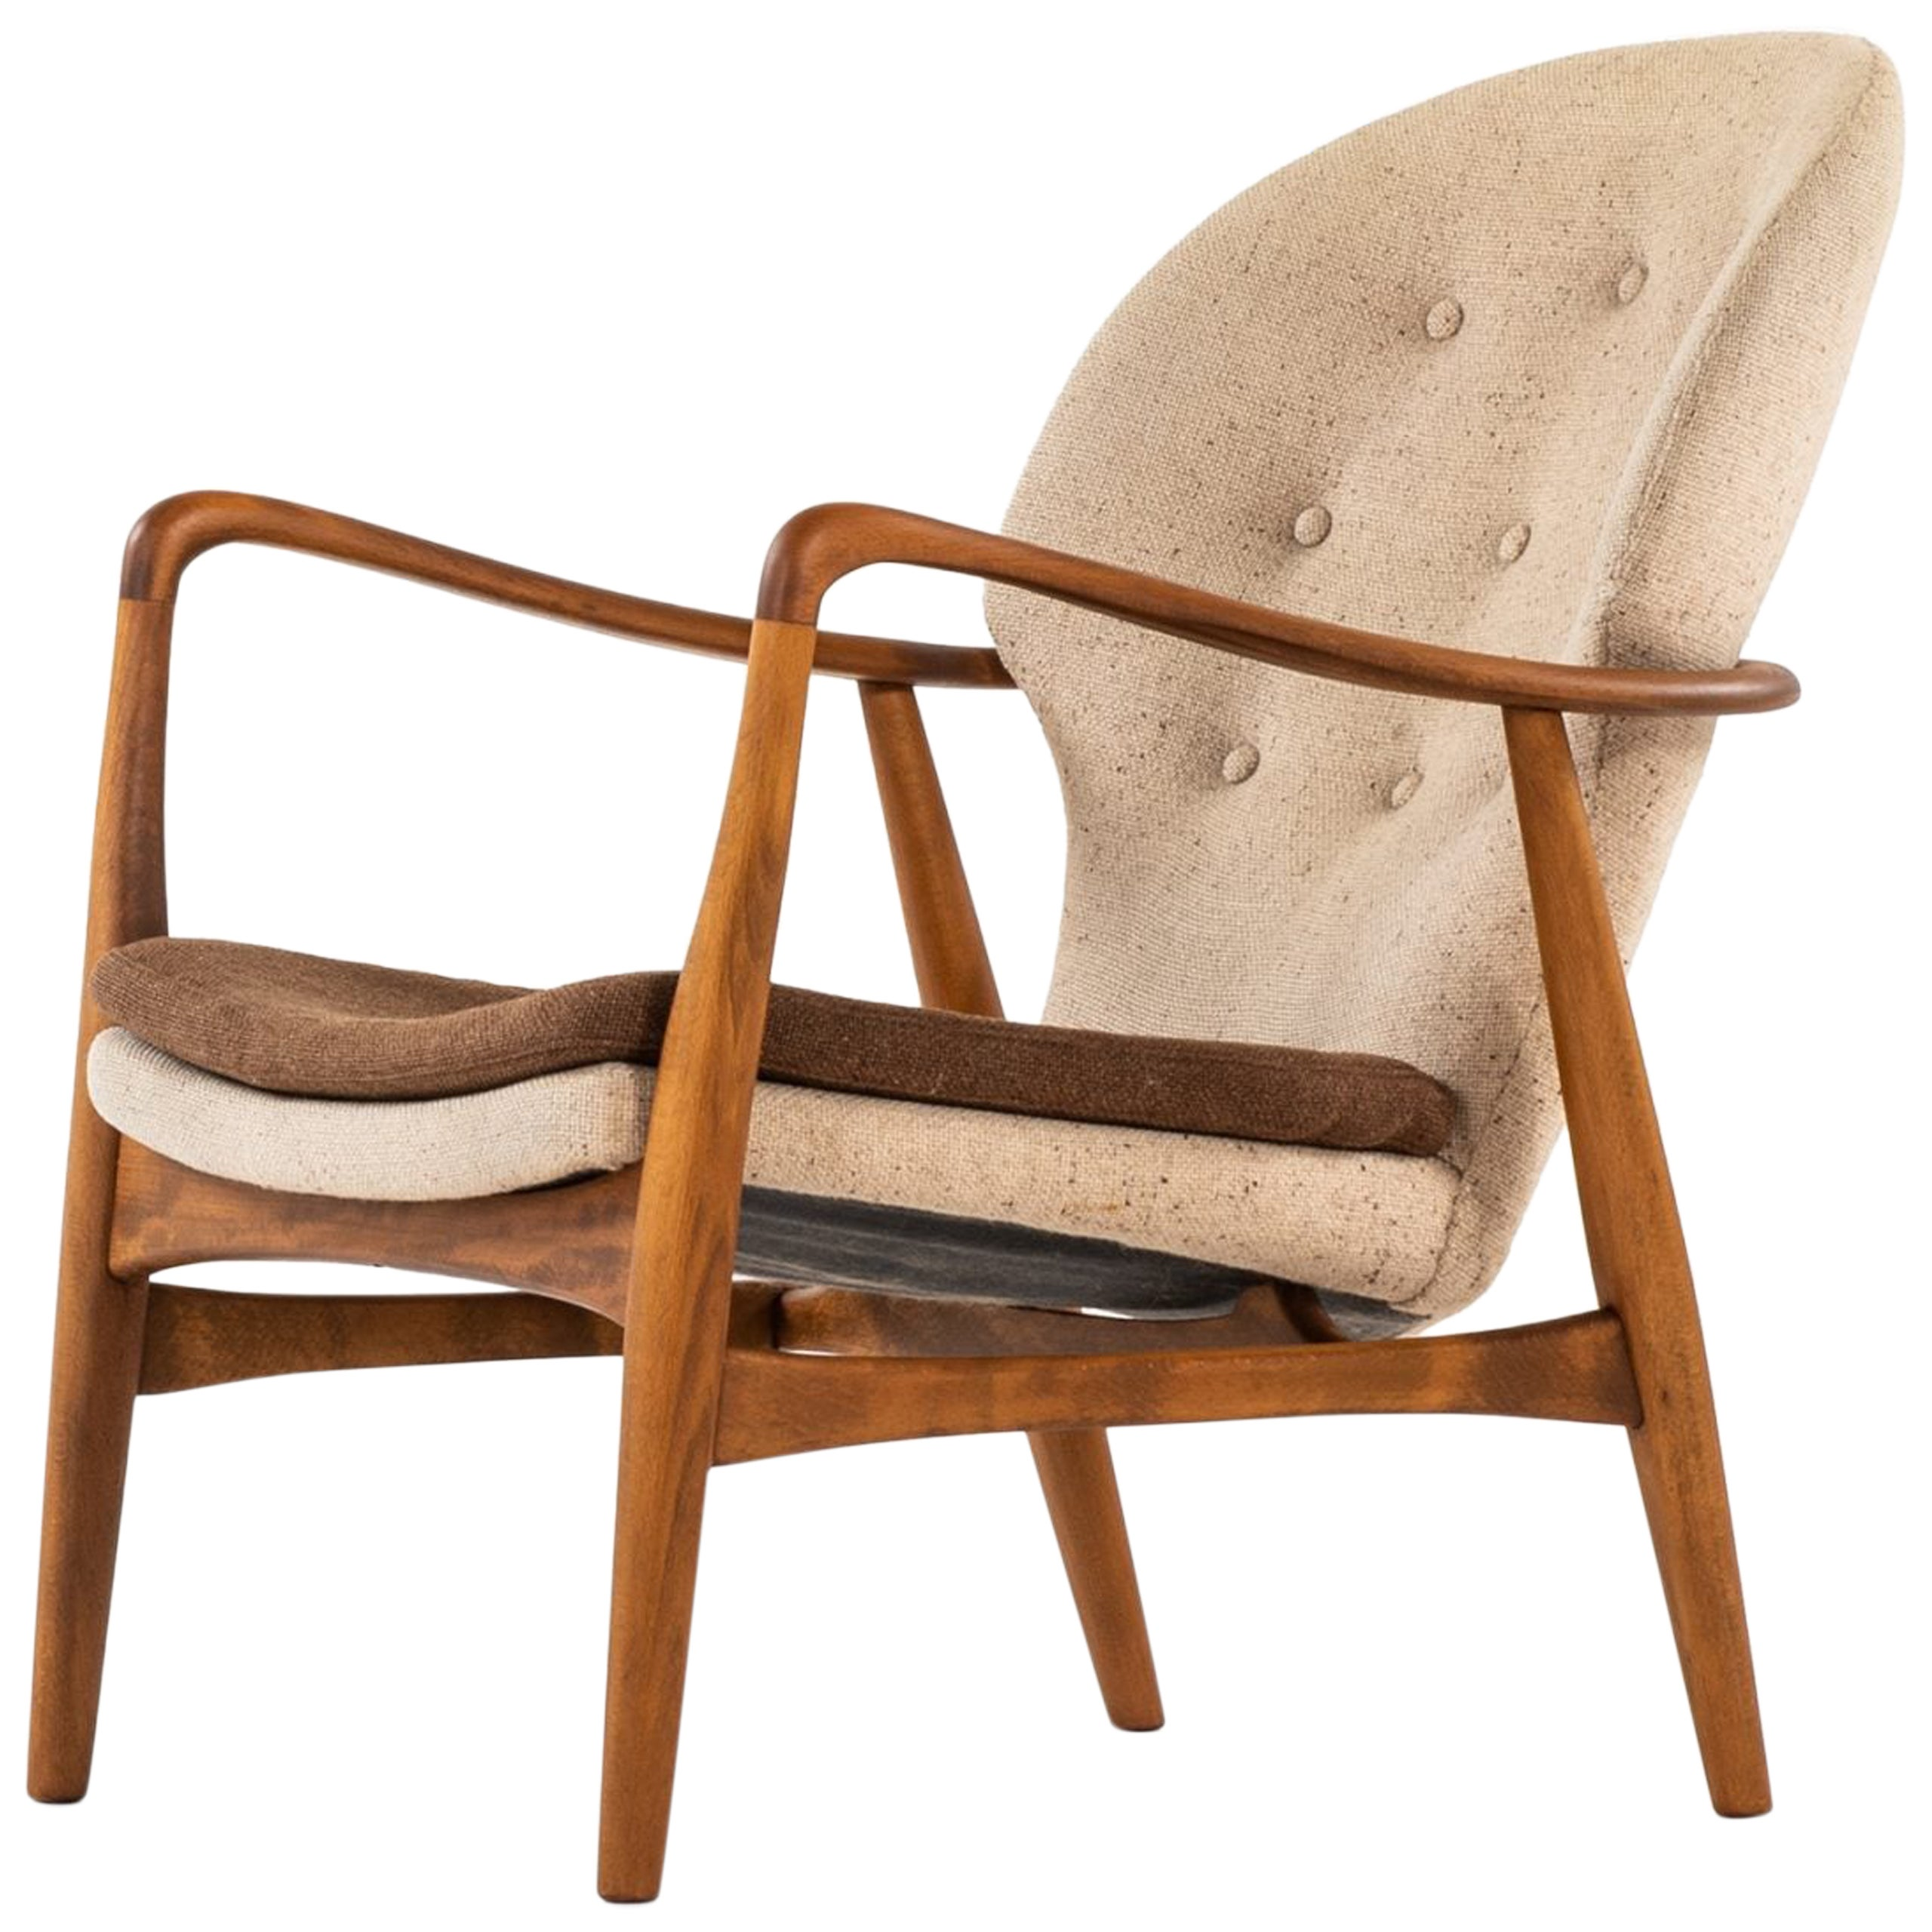 Ib Madsen & Acton Schubell Easy Chair Produced by Madsen & Schubell in Denmark